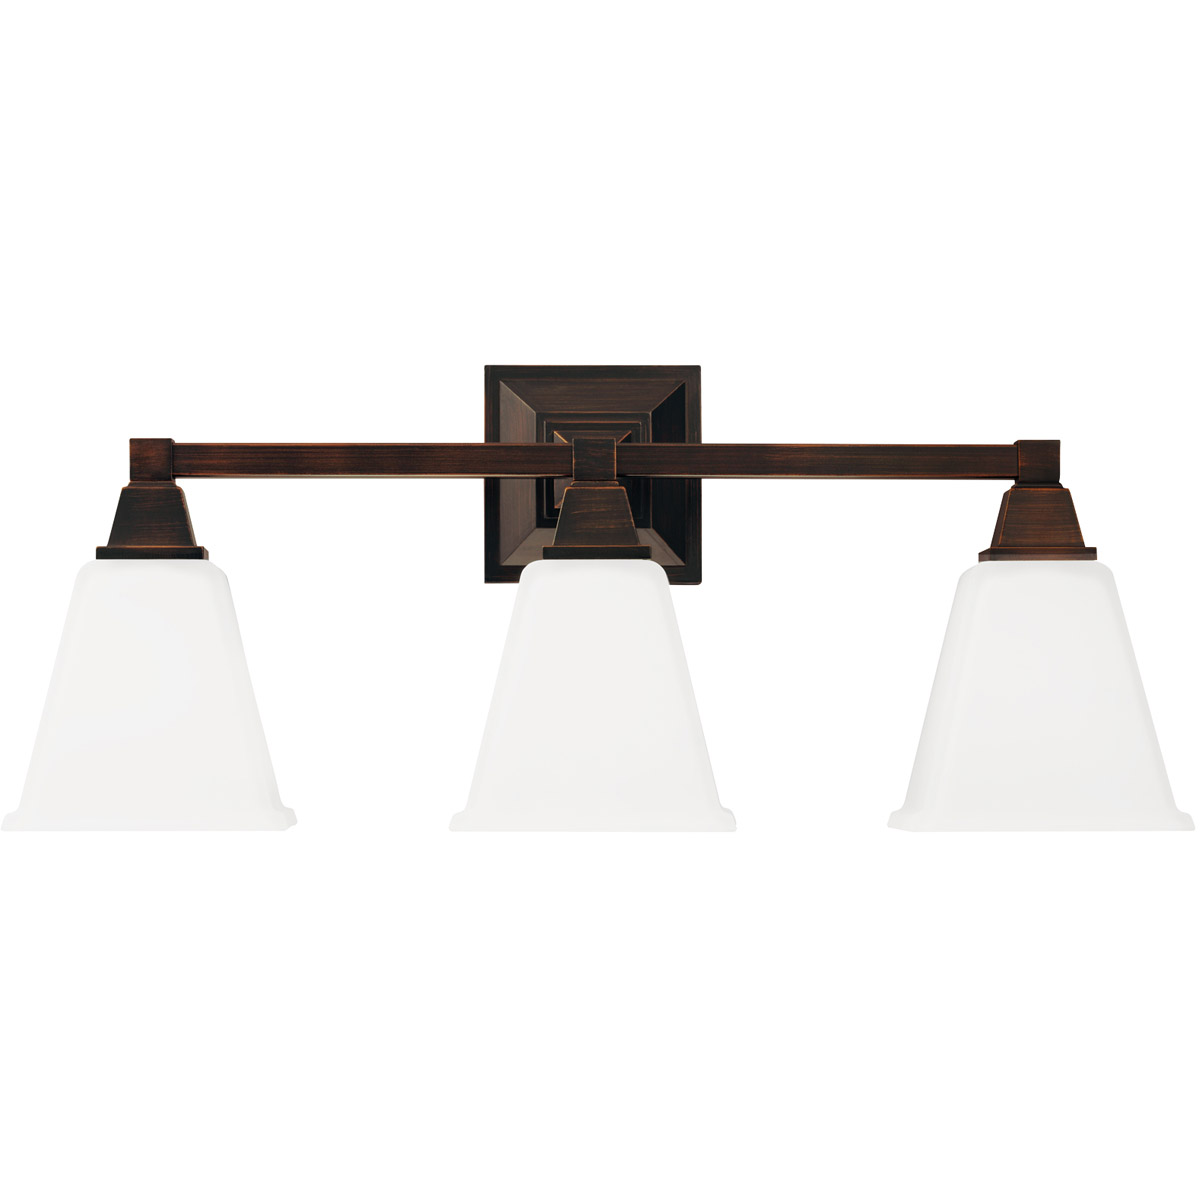 Sea Gull Denhelm 3 Light Bath Vanity in Burnt Sienna 4450403-710